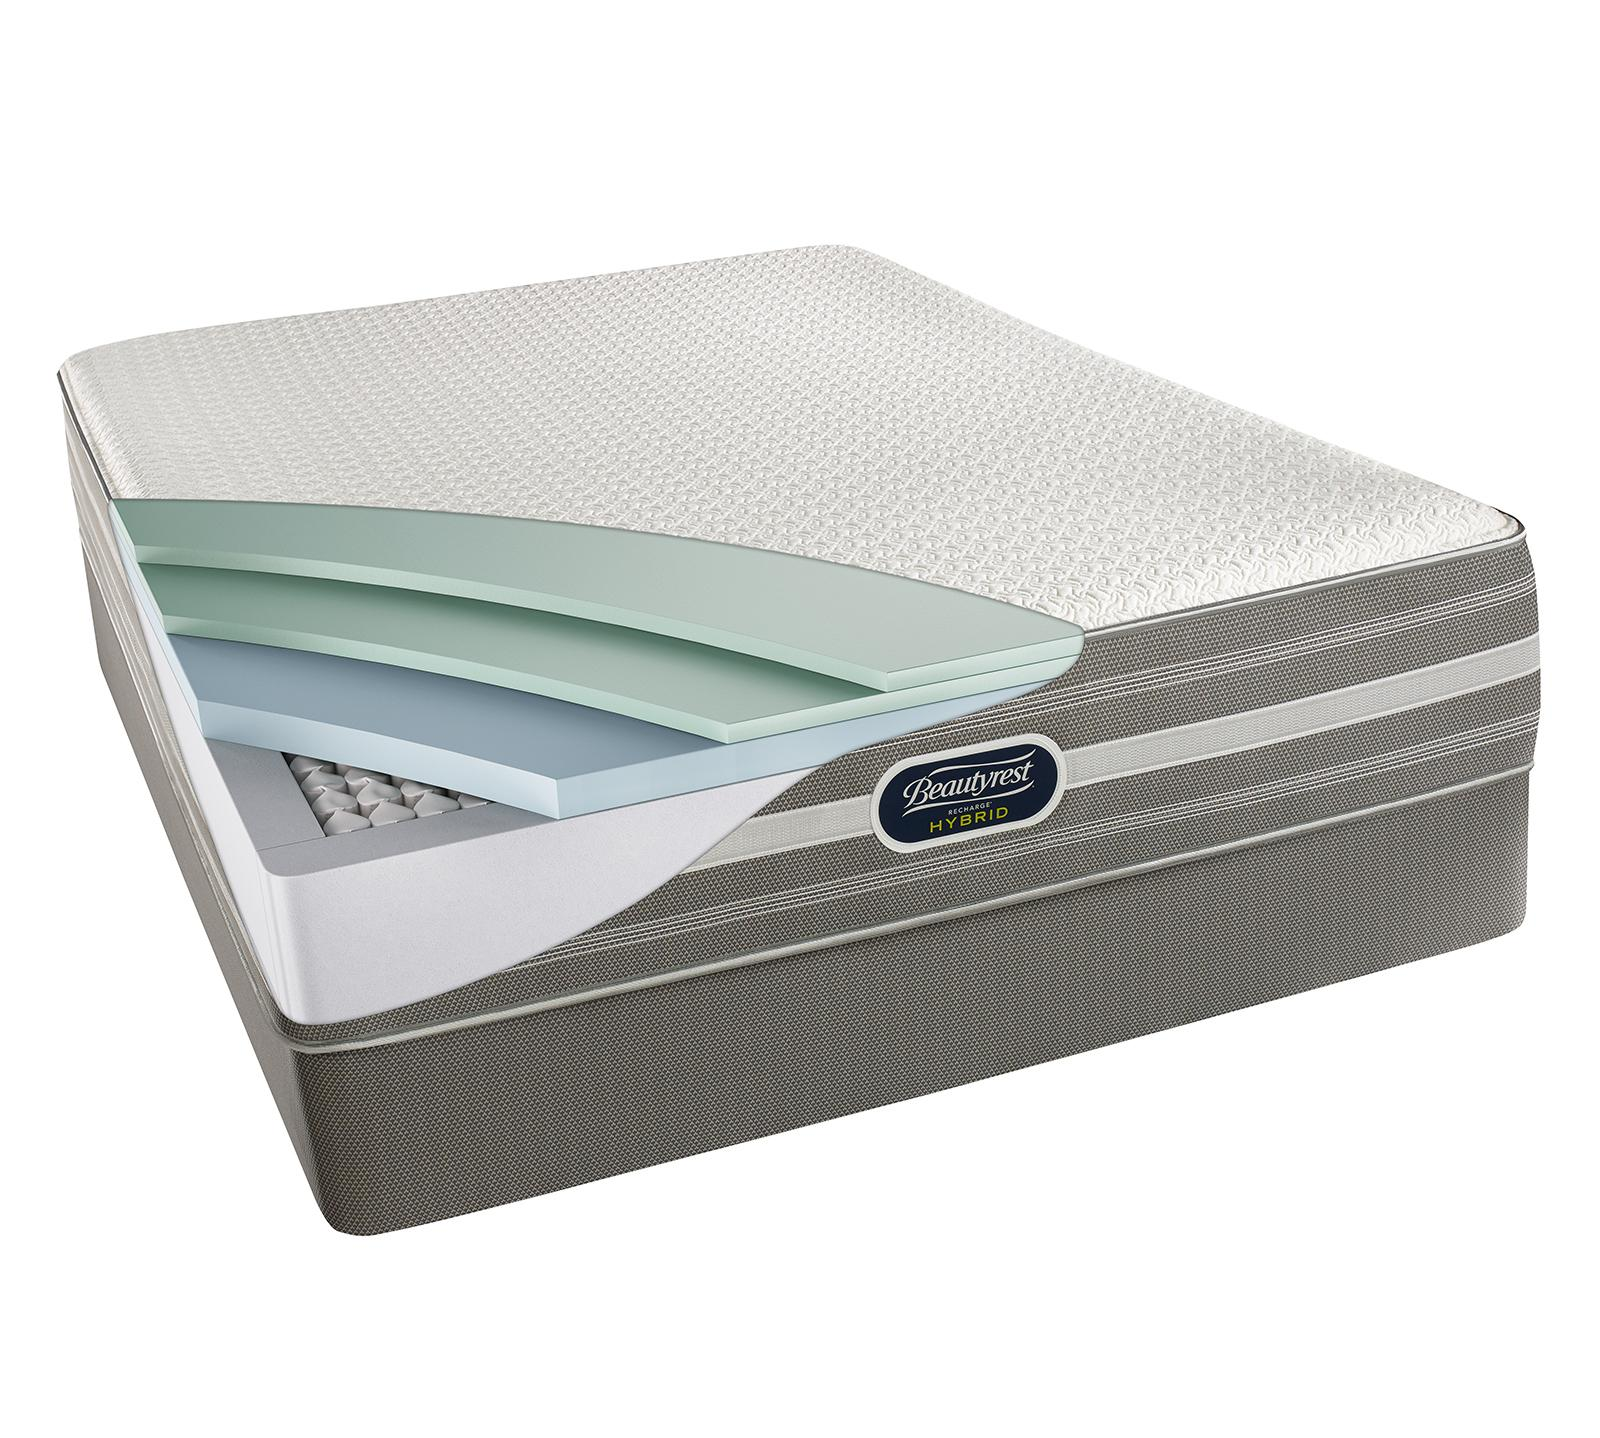 Simmons Beautyrest Recharge Hybrid Greenmont 13 5 Quot Plush